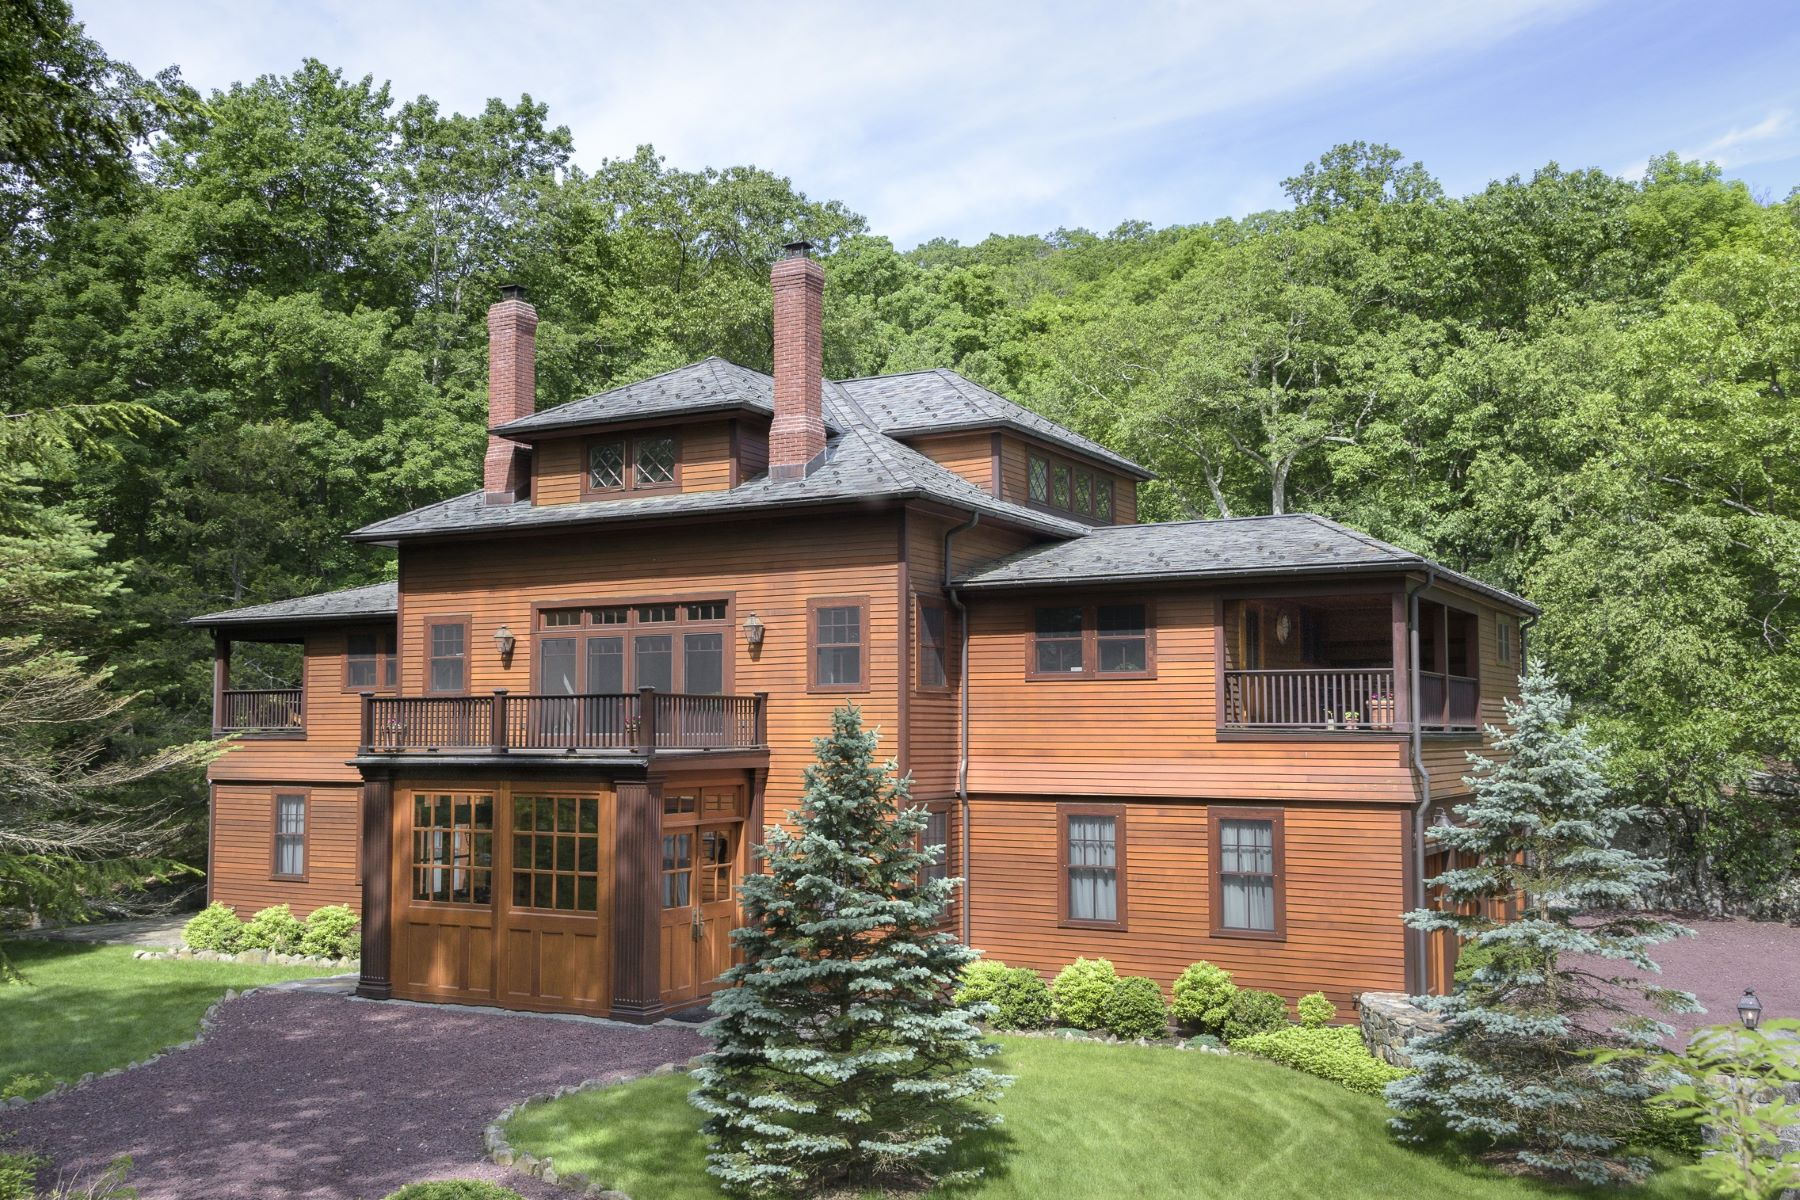 Single Family Home for Sale at Patterson Brook Carriage House 18 Patterson Brook Rd Tuxedo Park, New York, 10987 United States